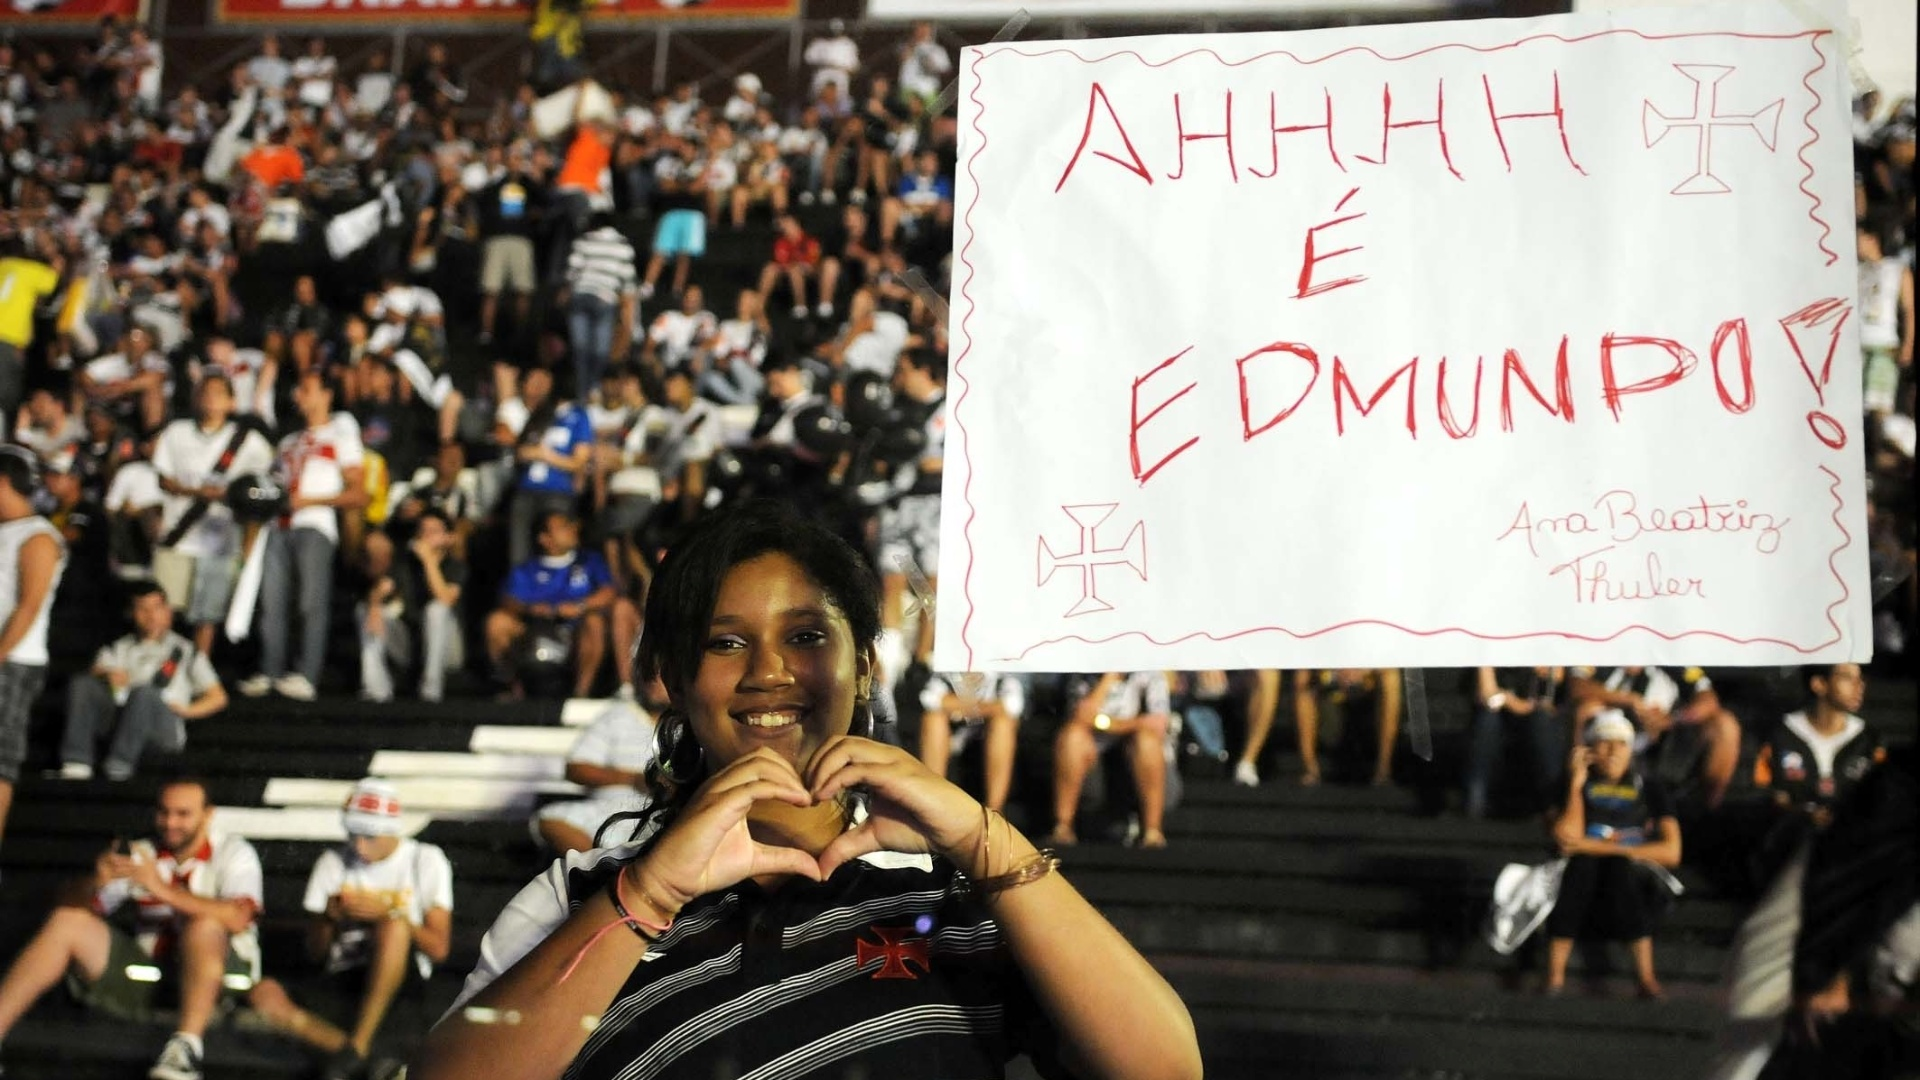 Torcida do Vasco exibe cartazes de homenagem a Edmundo antes da despedida do ex-atacante